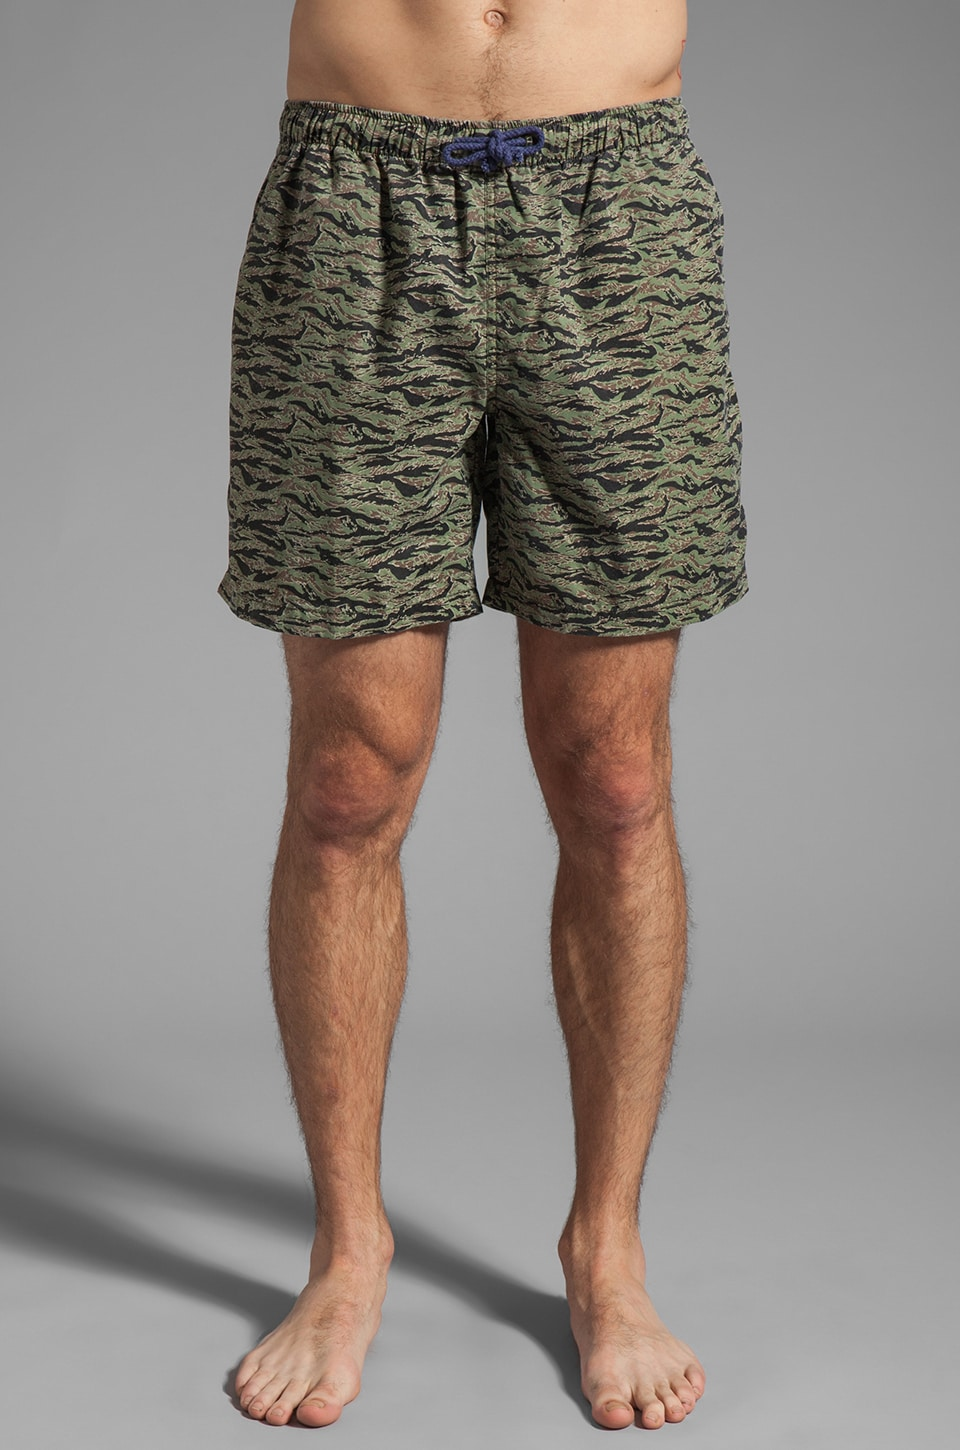 Vanishing Elephant Drawcord Boardshort in Camo